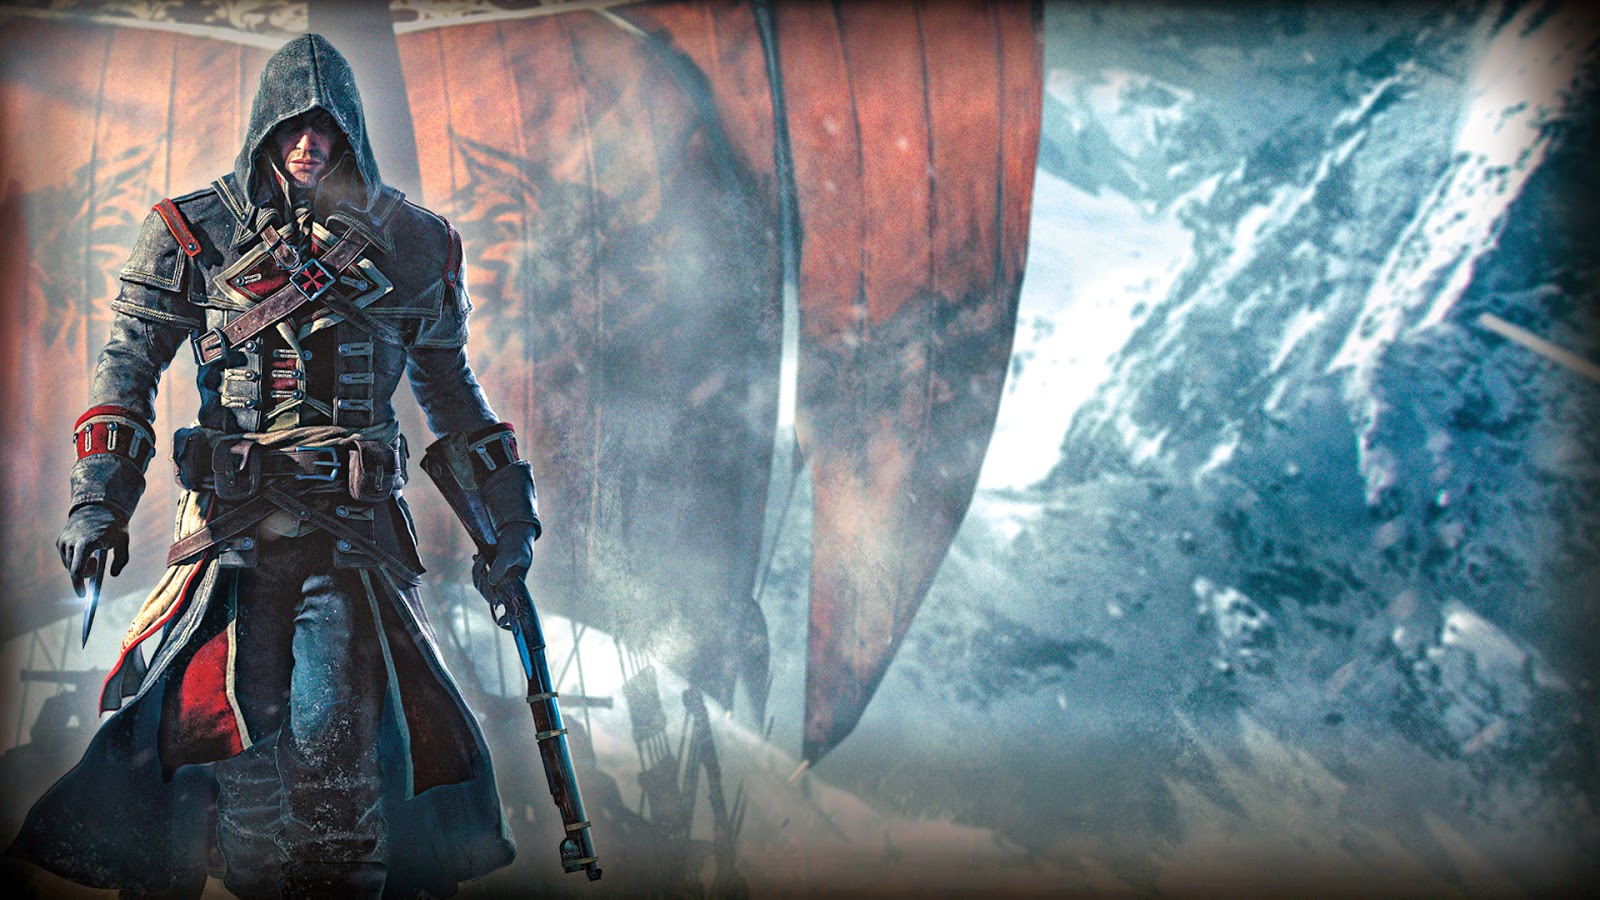 Assassin s Creed Rogue Wallpapers HD Wallpapers - assassins creed rogue wallpapers